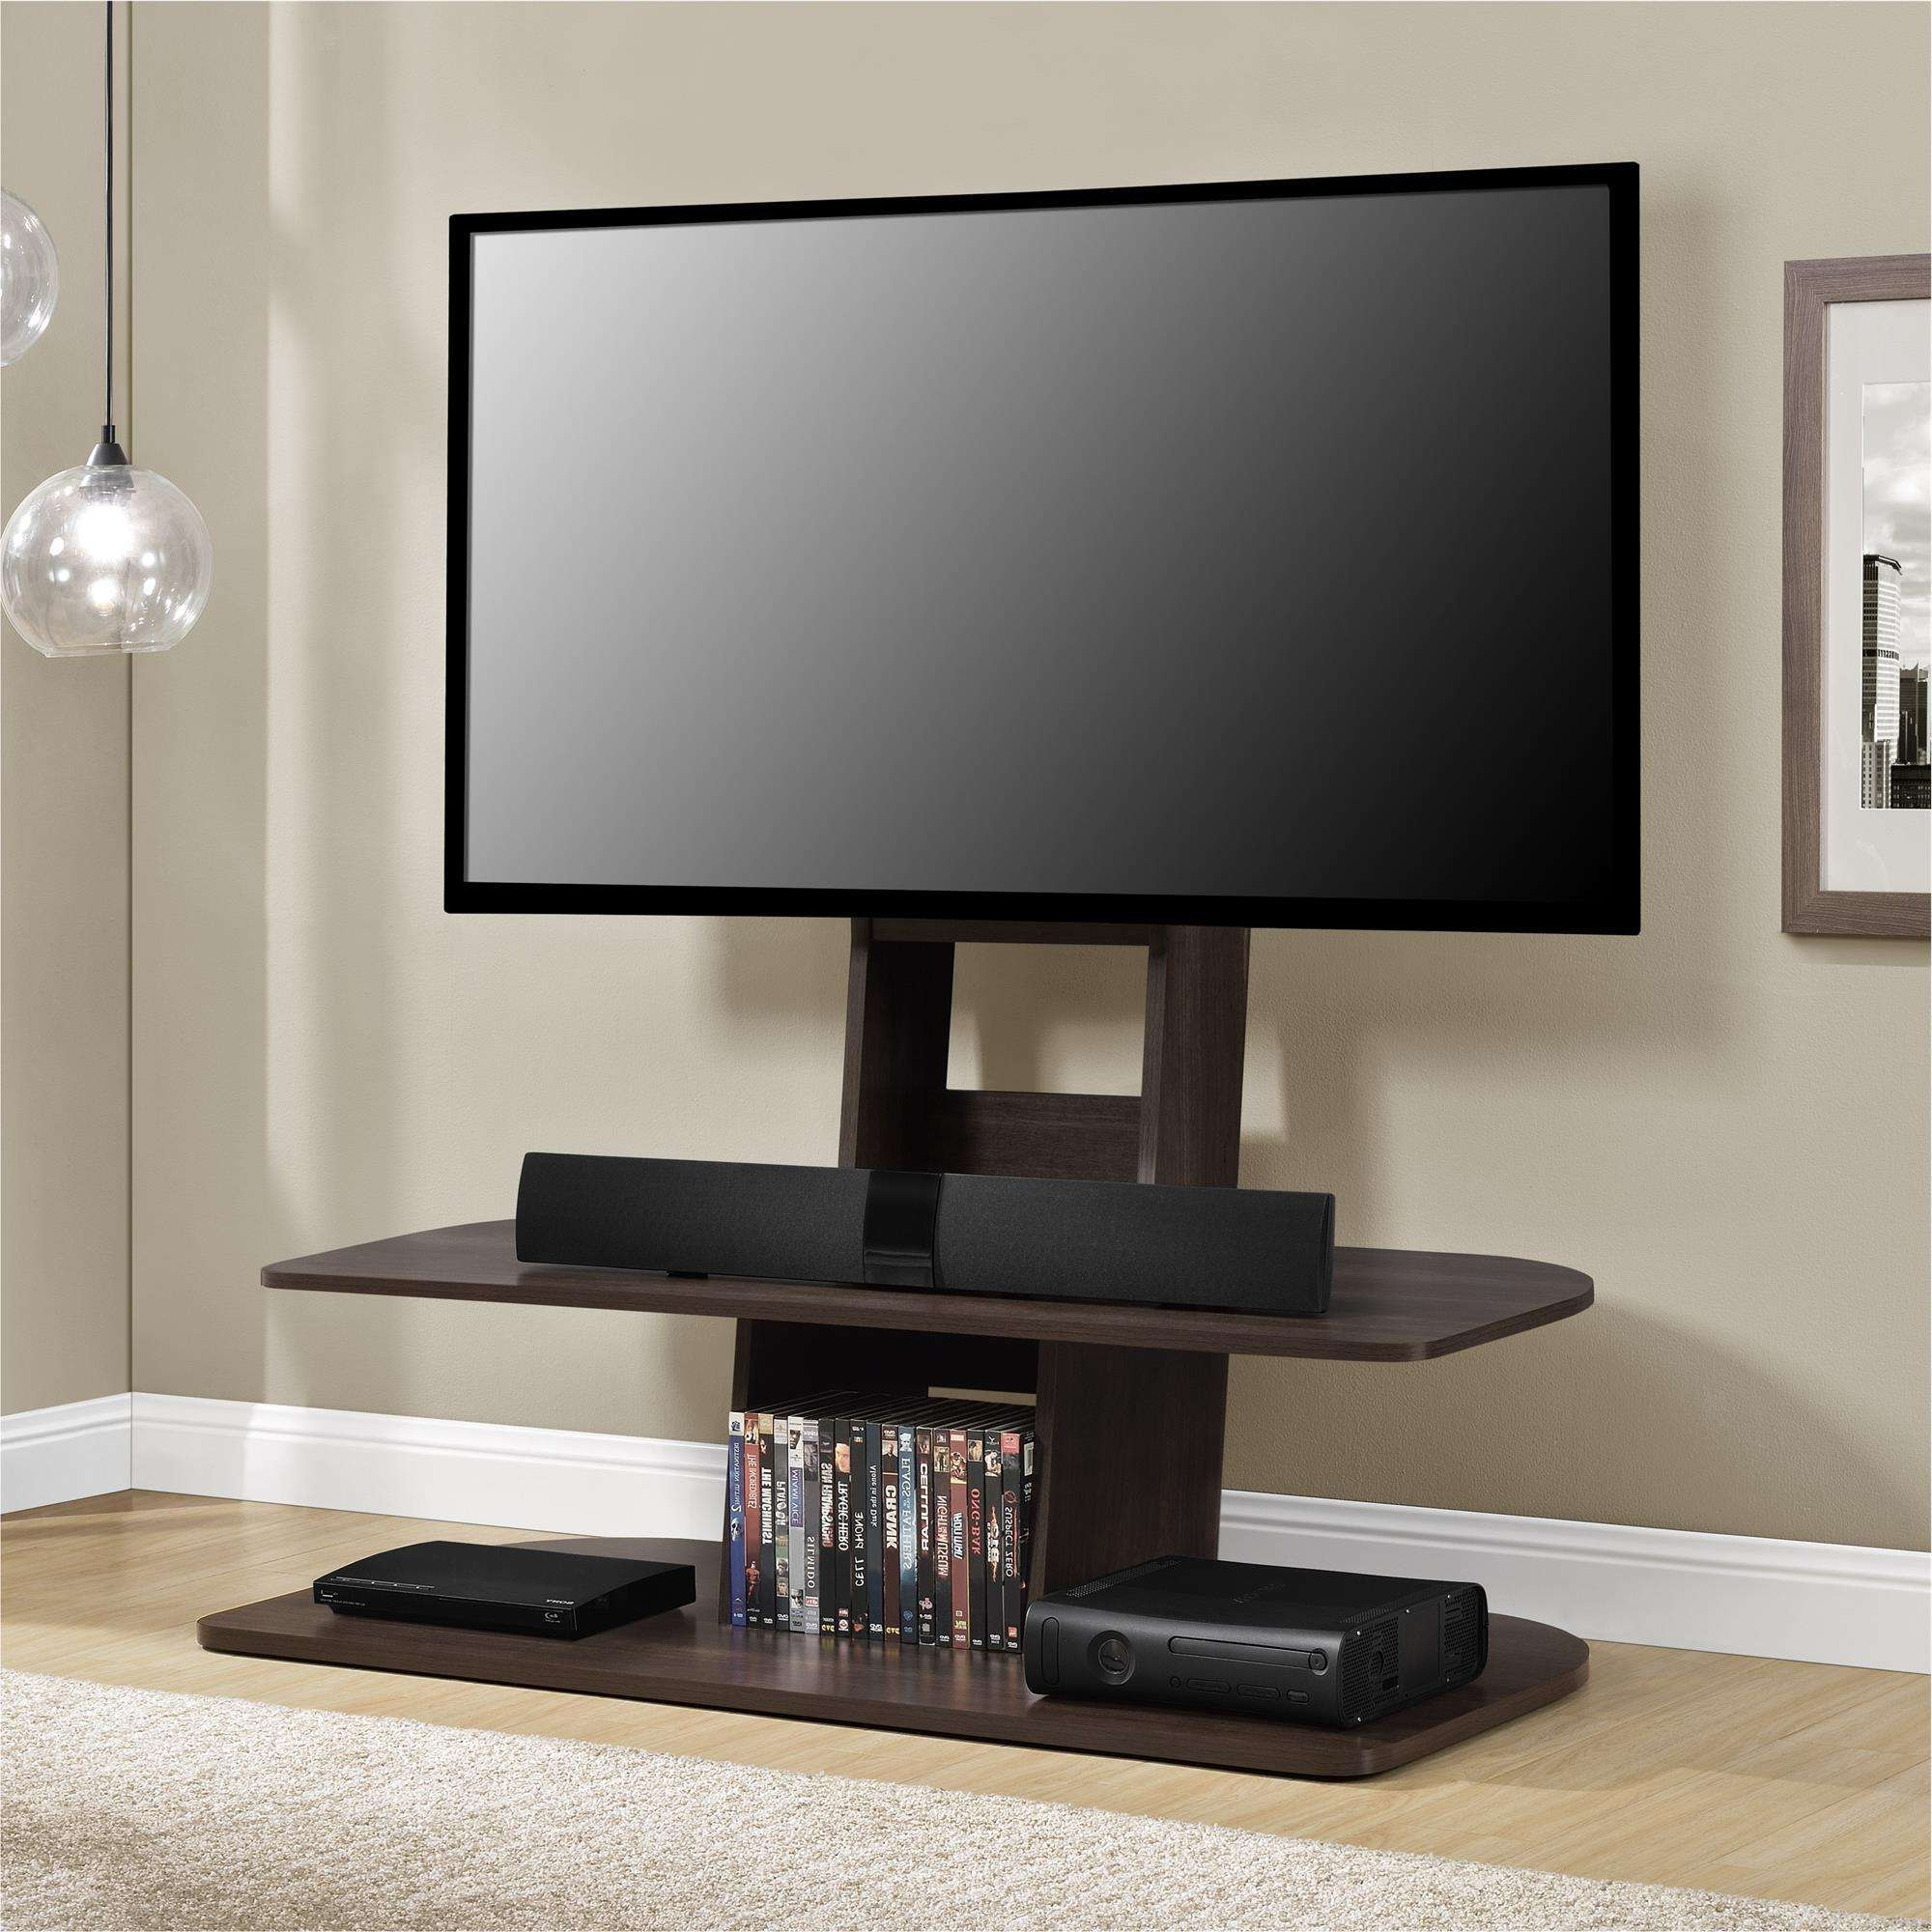 Tv : Exquisite 65 Inch Tv Stands With Integrated Mount Interesting With 65 Inch Tv Stands With Integrated Mount (View 11 of 15)